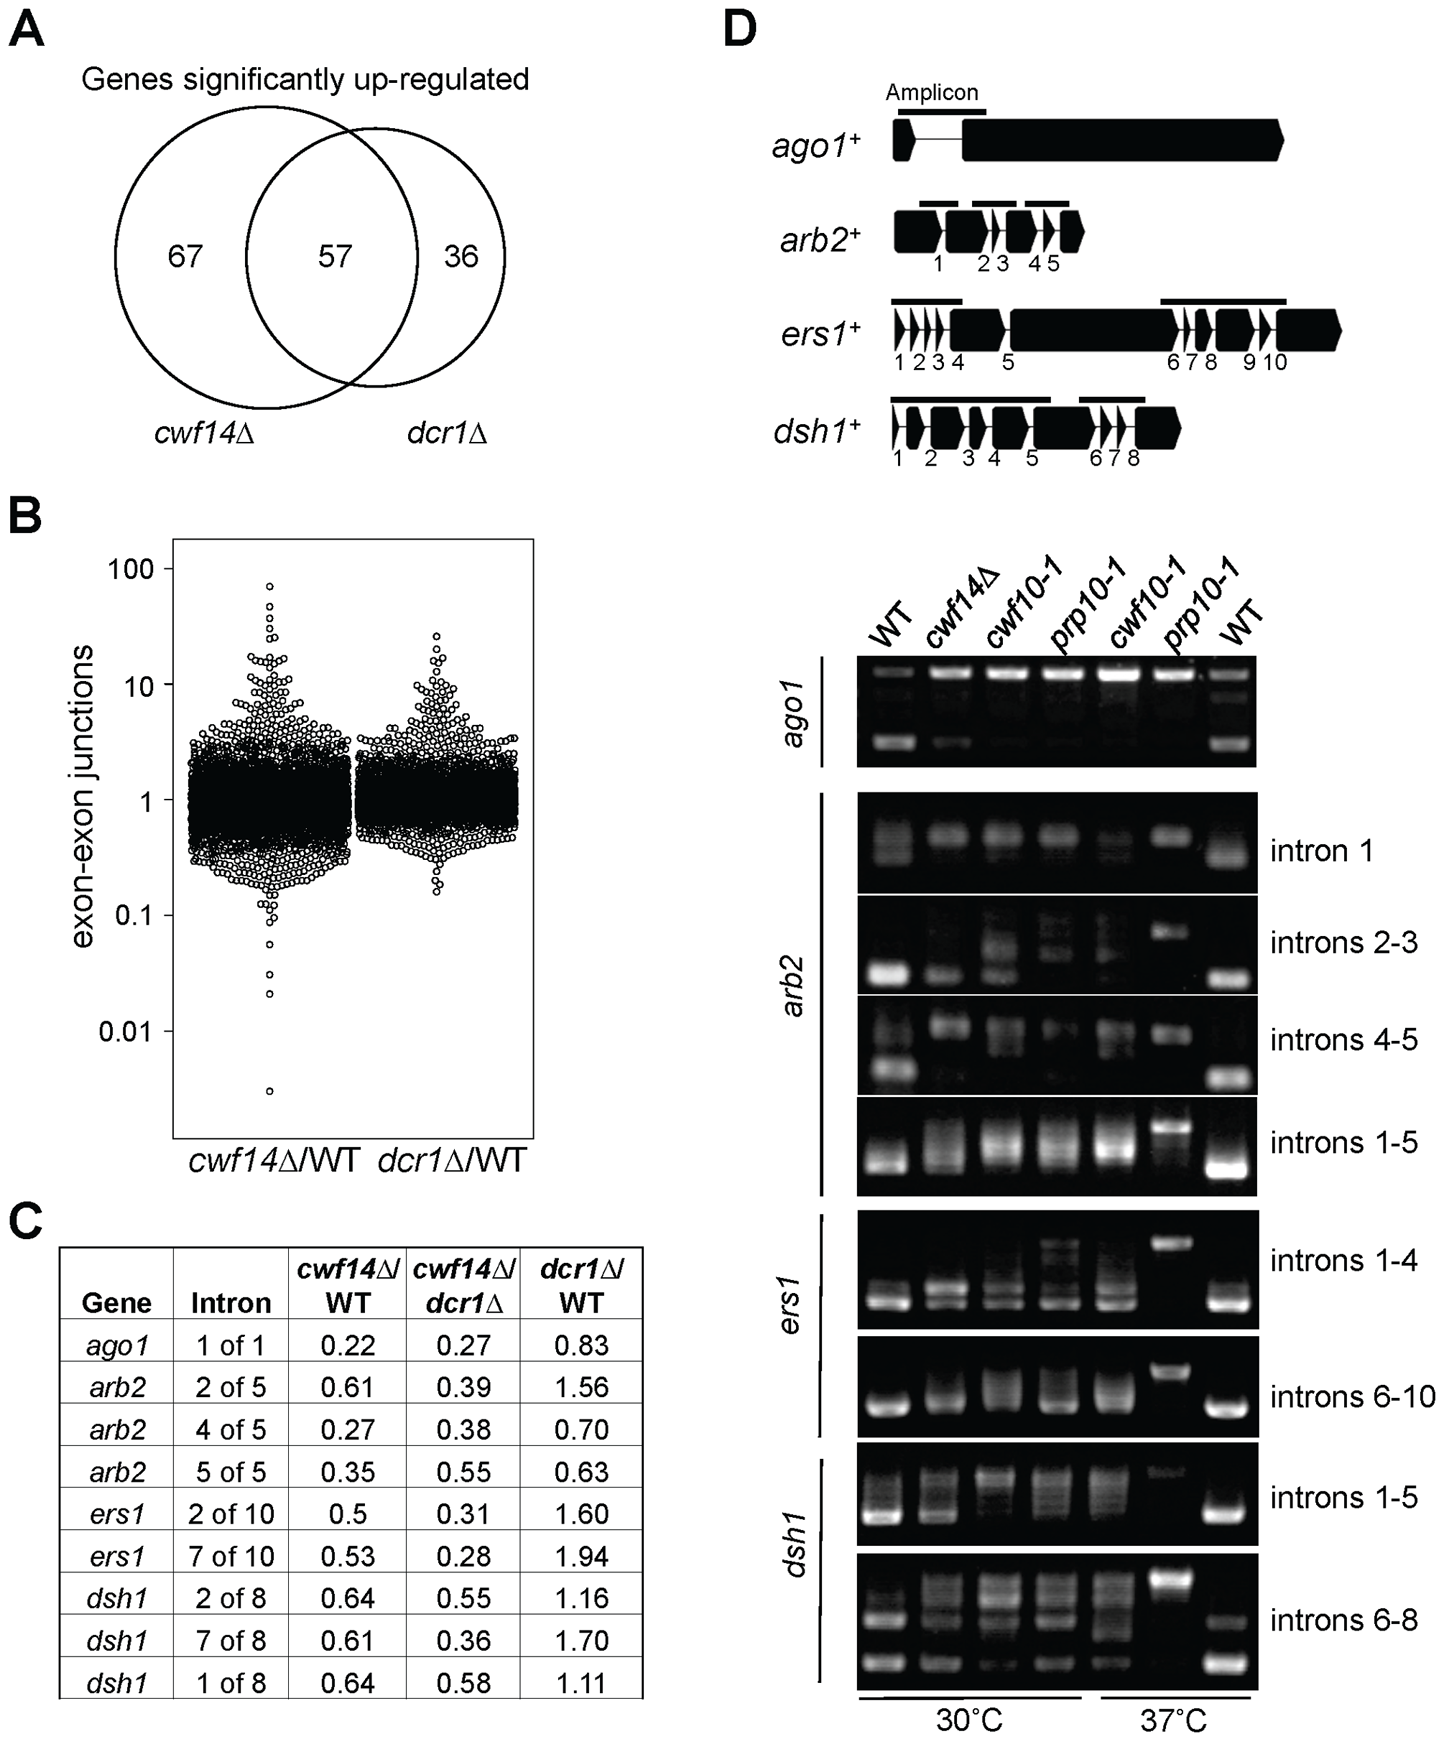 Cwf14 is required for the proper splicing of RNAi factors.